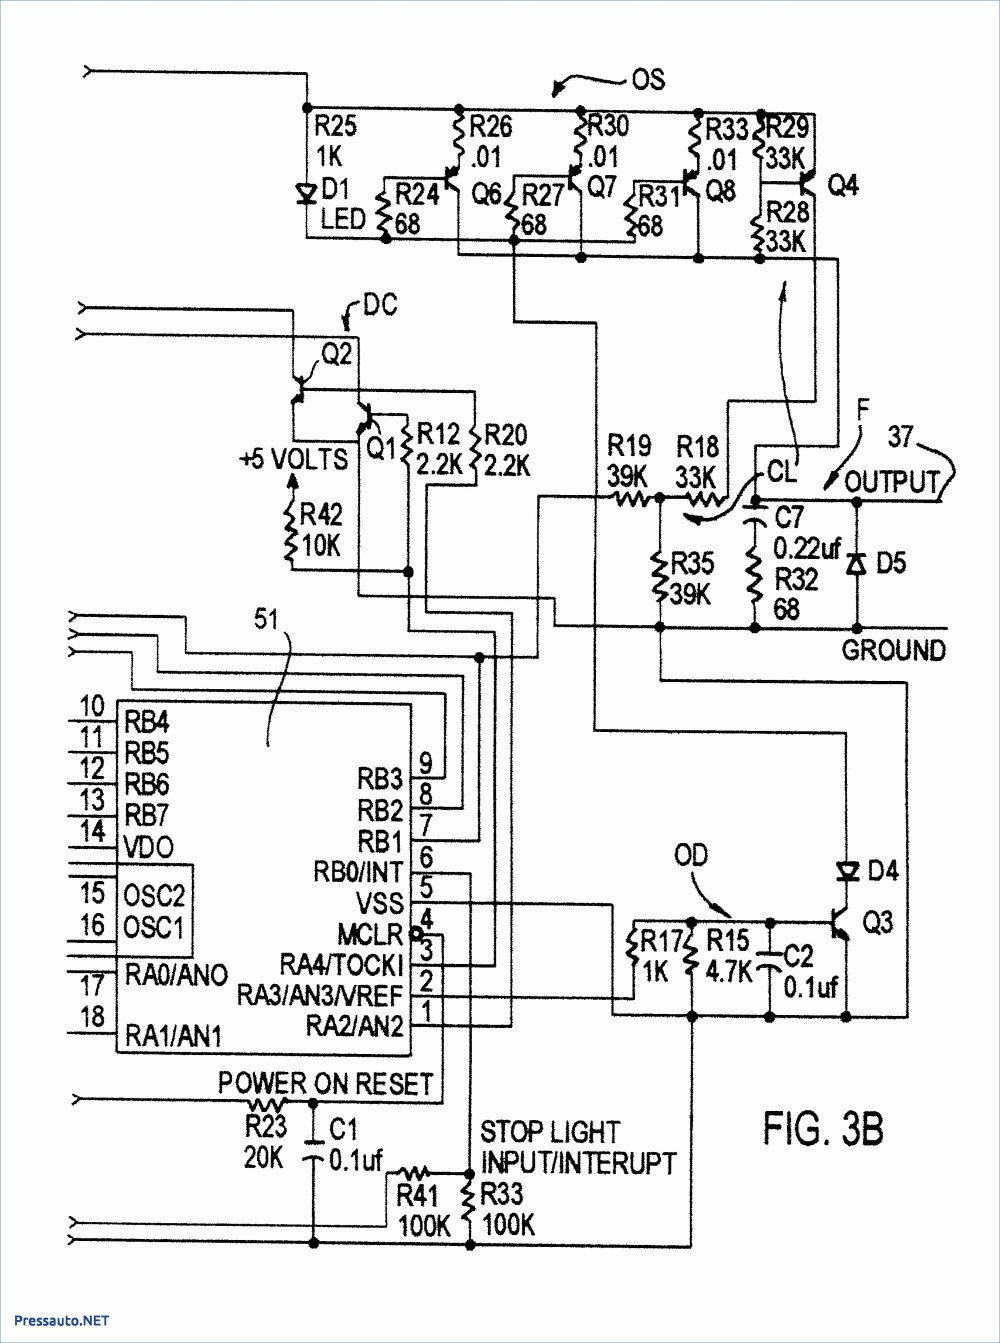 medium resolution of 2004 chrysler pacifica wiring schematic full size of wiring diagram 2004 chrysler pacifica wiring diagram